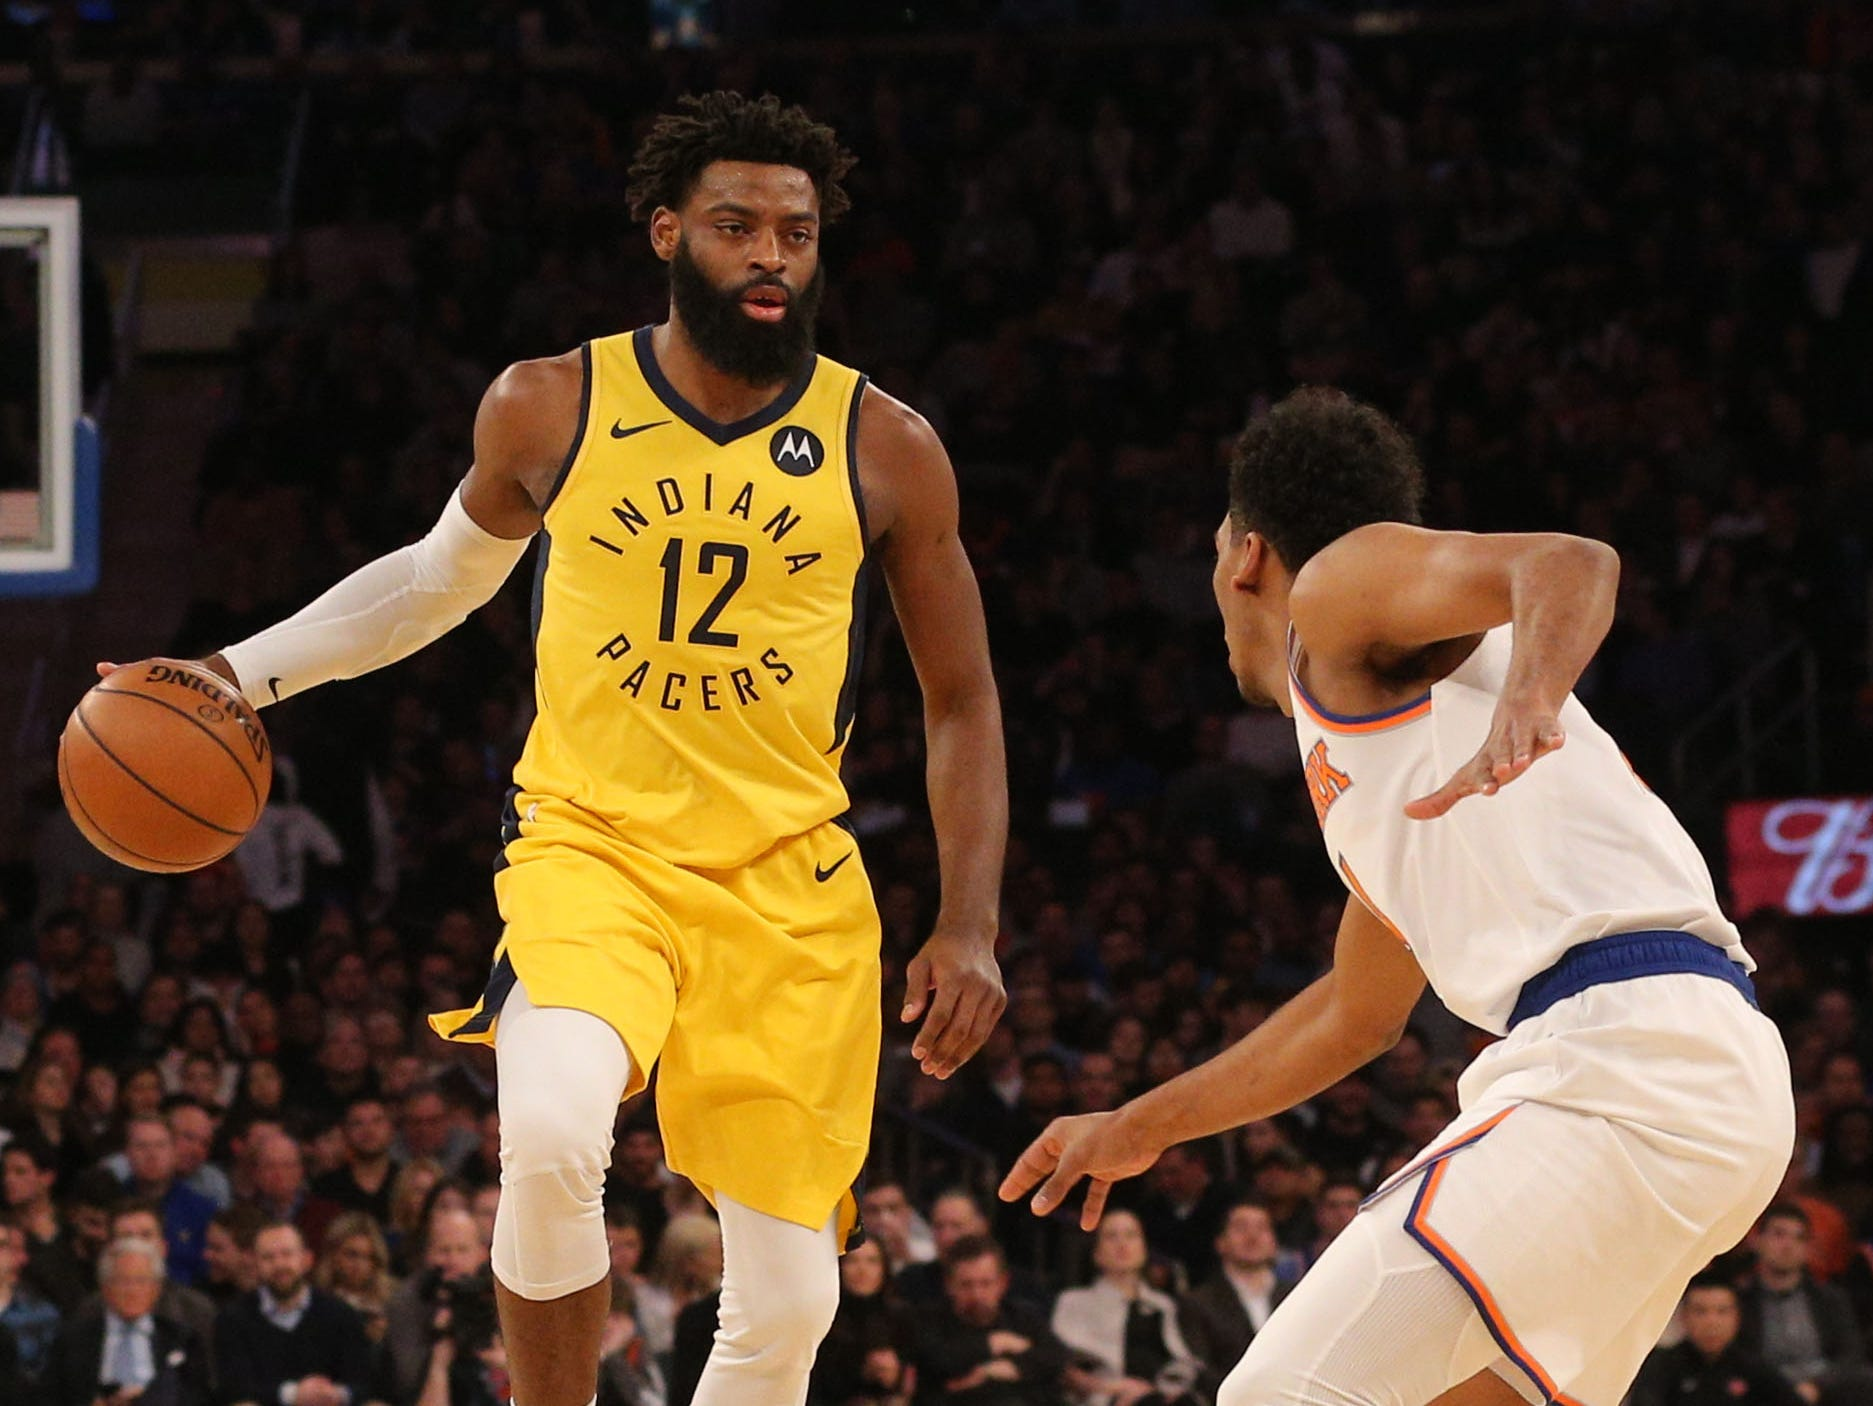 Jan 11, 2019; New York, NY, USA; Indiana Pacers guard Tyreke Evans (12) controls the ball against New York Knicks guard Allonzo Trier (14) during the first quarter at Madison Square Garden. Mandatory Credit: Brad Penner-USA TODAY Sports